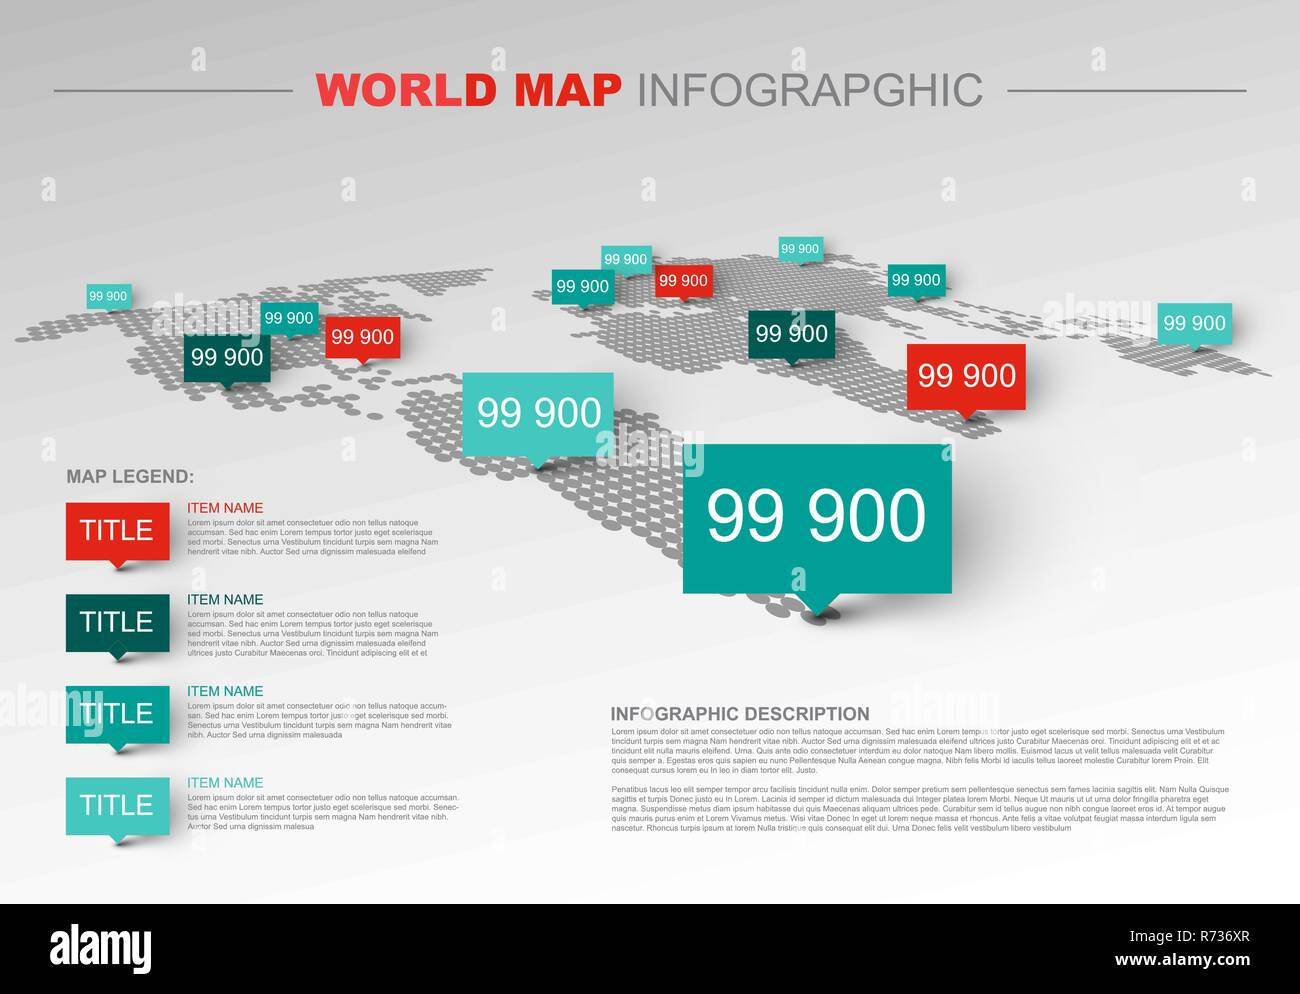 Light World map infographic template with pointer marks ... on map of all of europe, map charts, map with mountains, map facebook covers, map travel, map sea monster, map google, map of america, map from europe, map virginia usa, map of african ethnic groups, map miami fl, map in spanish, map with legend, map norms, map of european ethnic groups, map in minecraft, map photography, map making, map print,